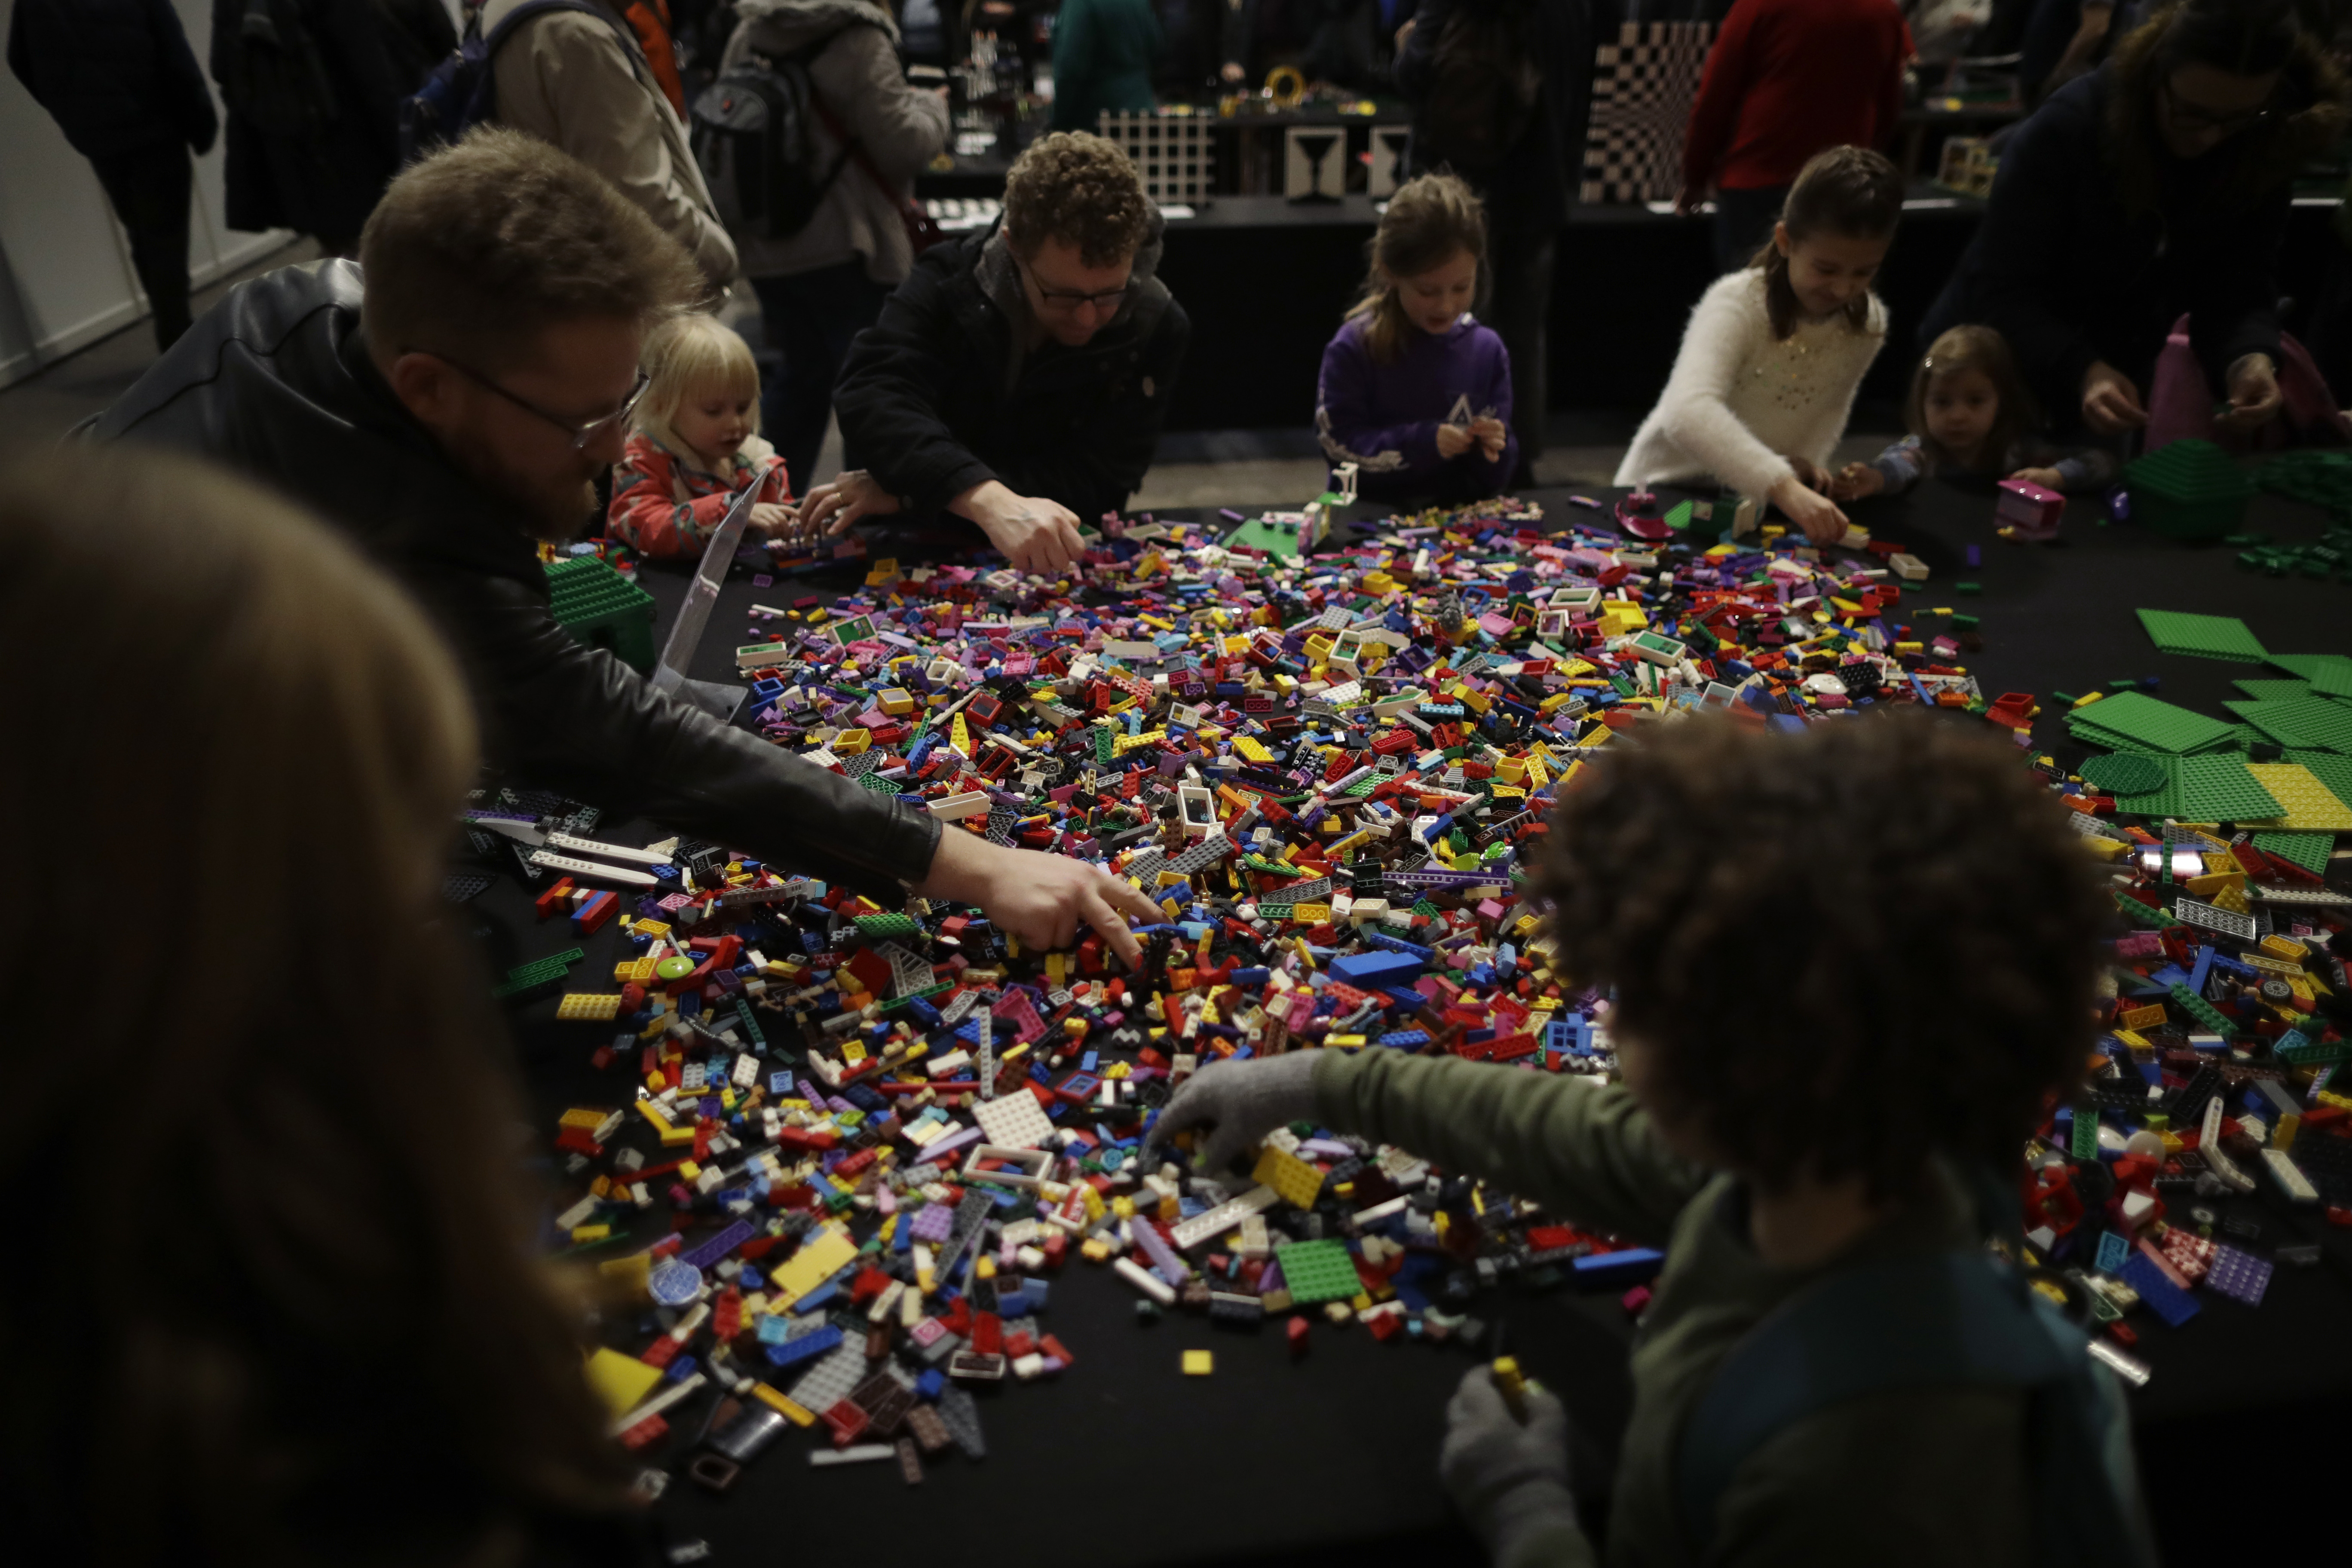 Children and adults play with Lego on a stand at the London Model Engineering Exhibition at Alexandra Palace in north London, Friday, Jan. 17, 2020.